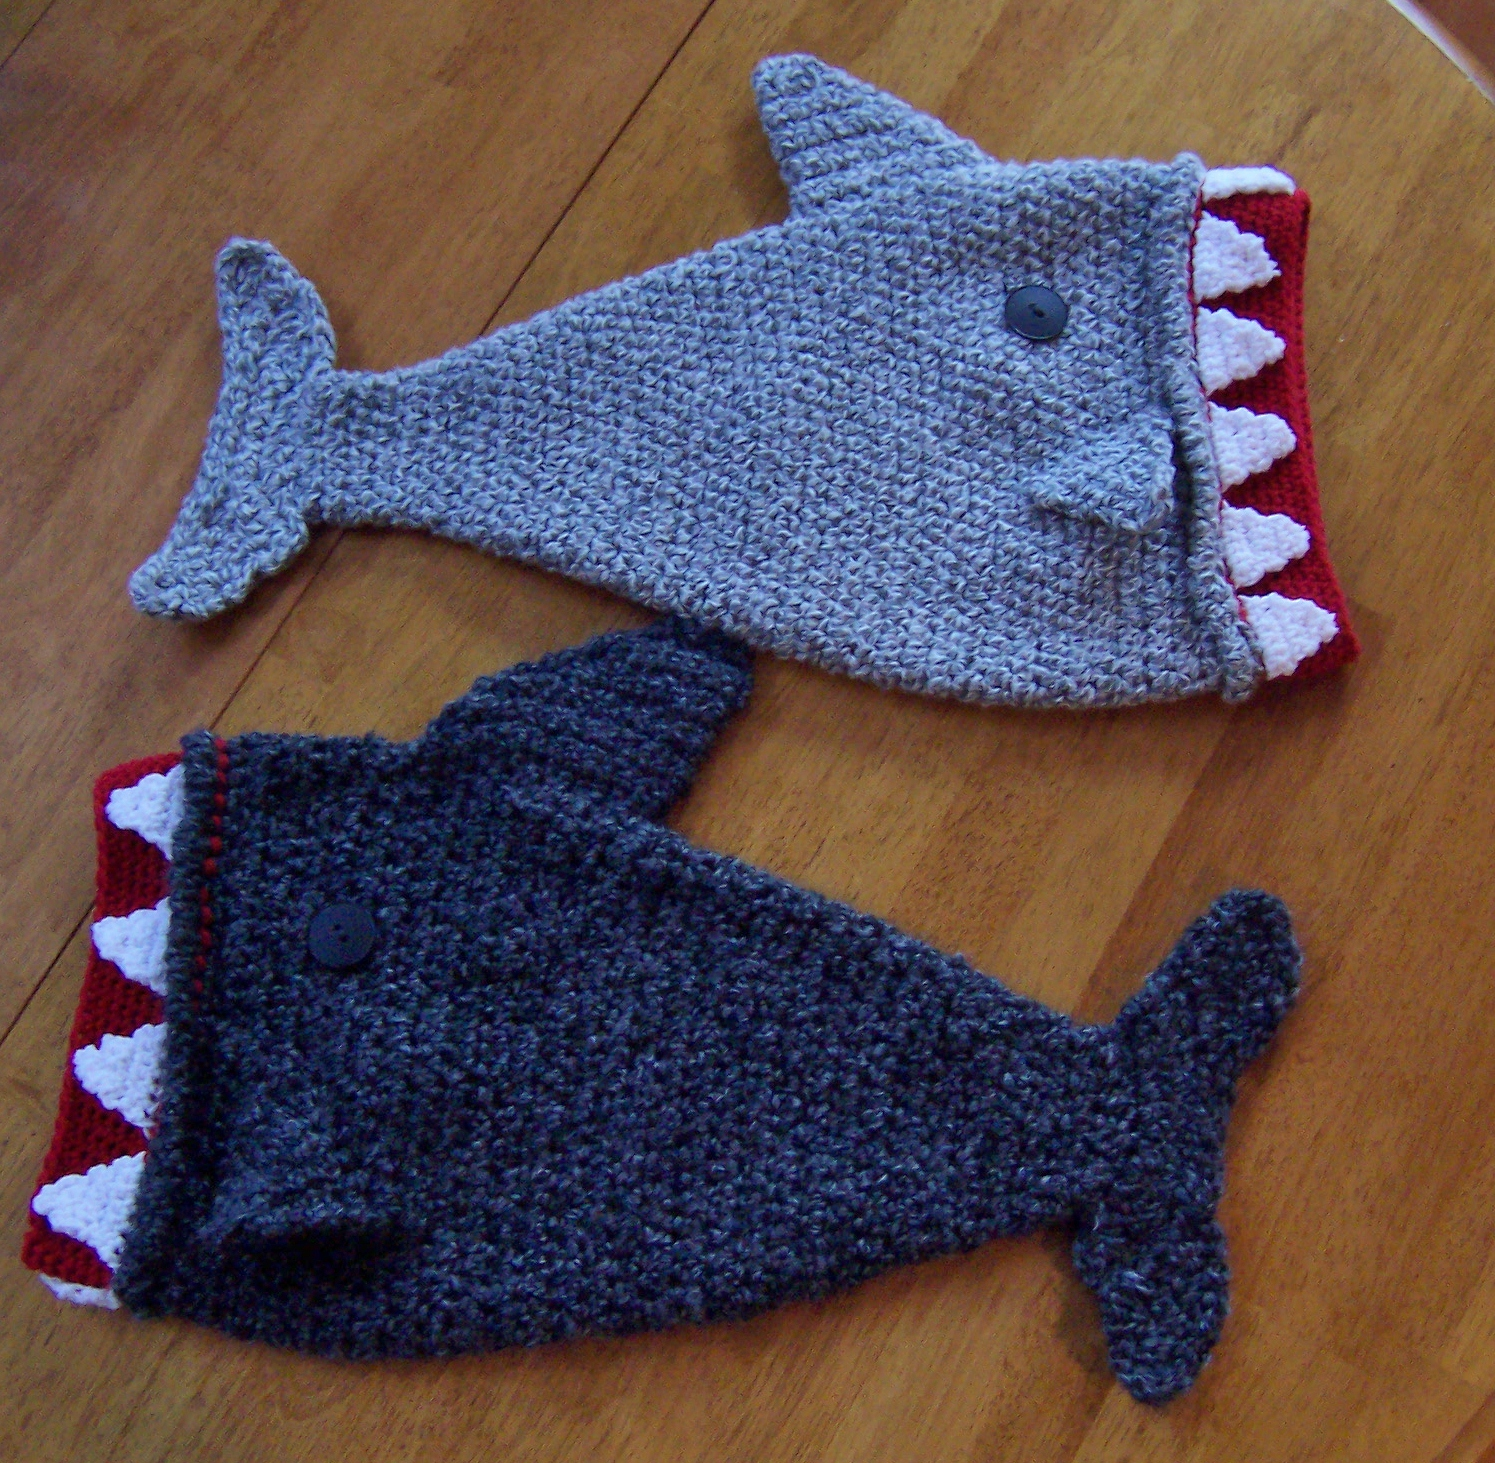 Crocheting Help : It?s Shark Week-Crochet a Shark and Help Halos of Hope Crochet By ...